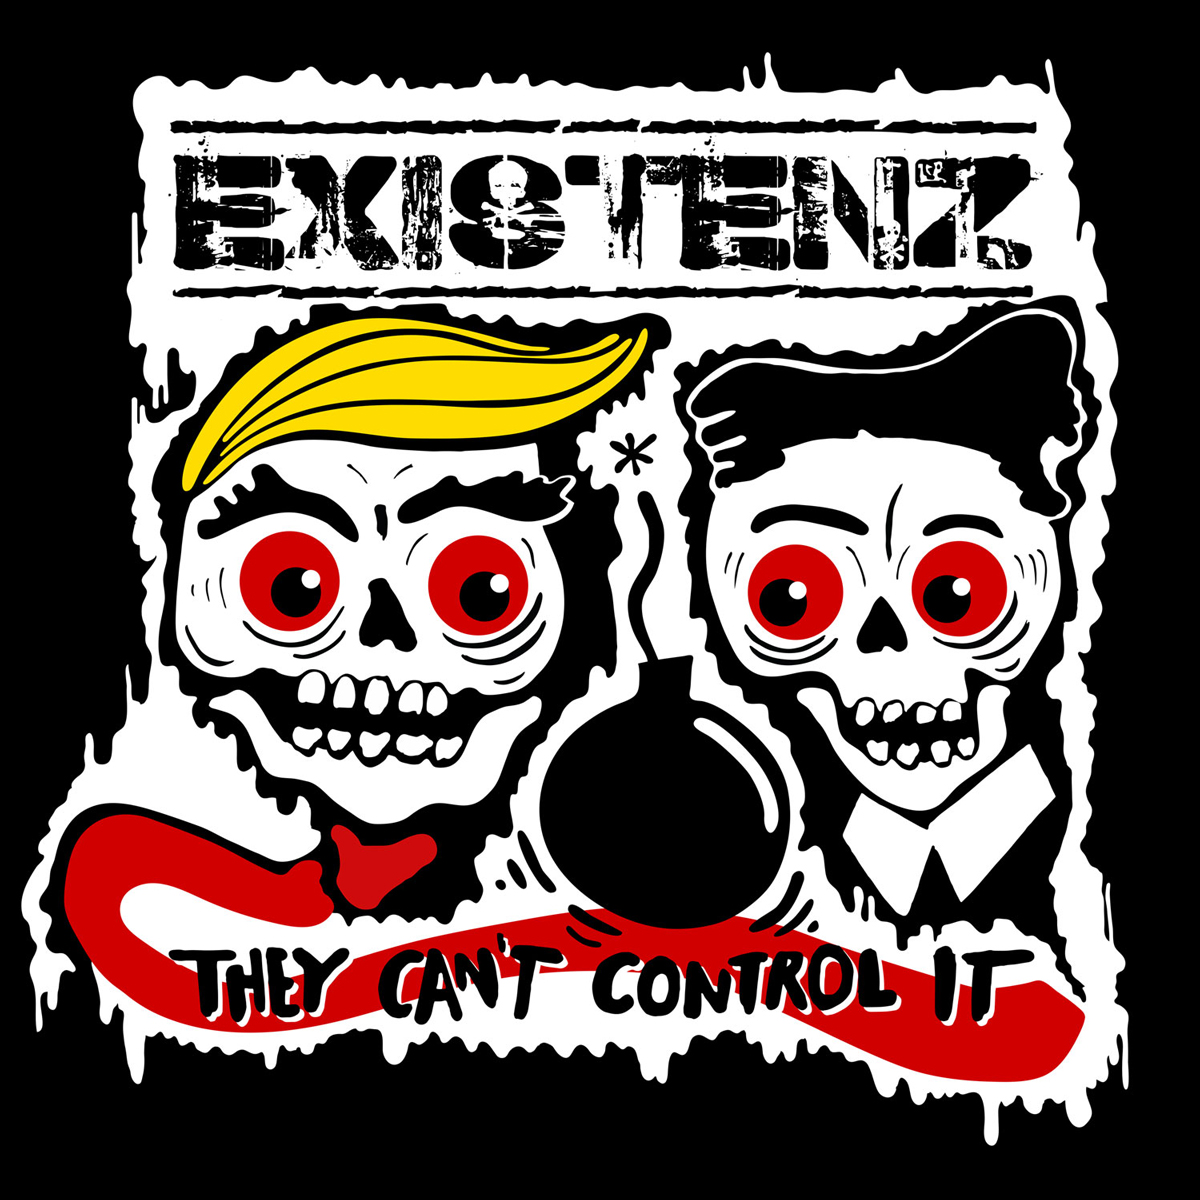 Existenz/The Nilz - They Cant Control It (Orange Vinyl) SIGNED - 12´